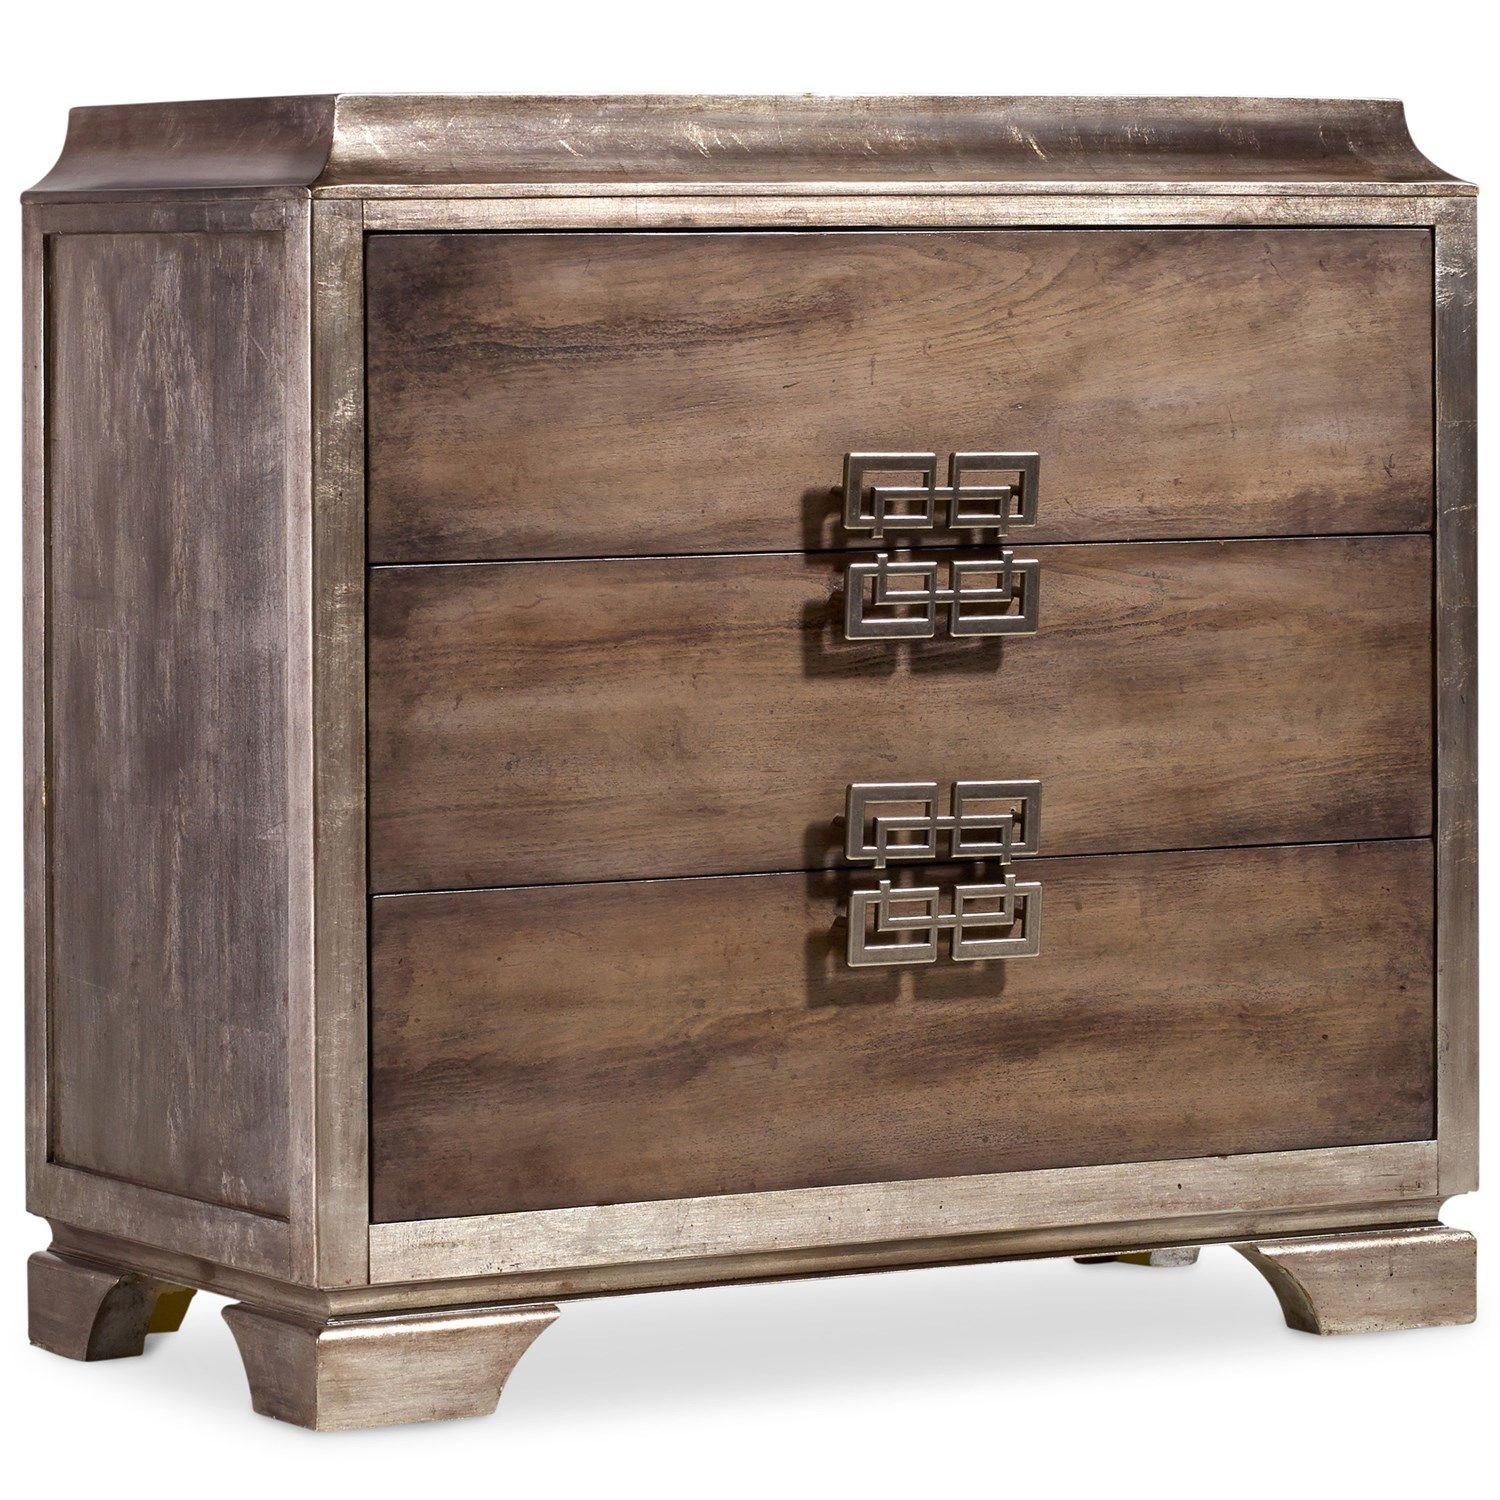 Hooker Furniture 638 85136 Melange Lambert Chest In Medium Wood